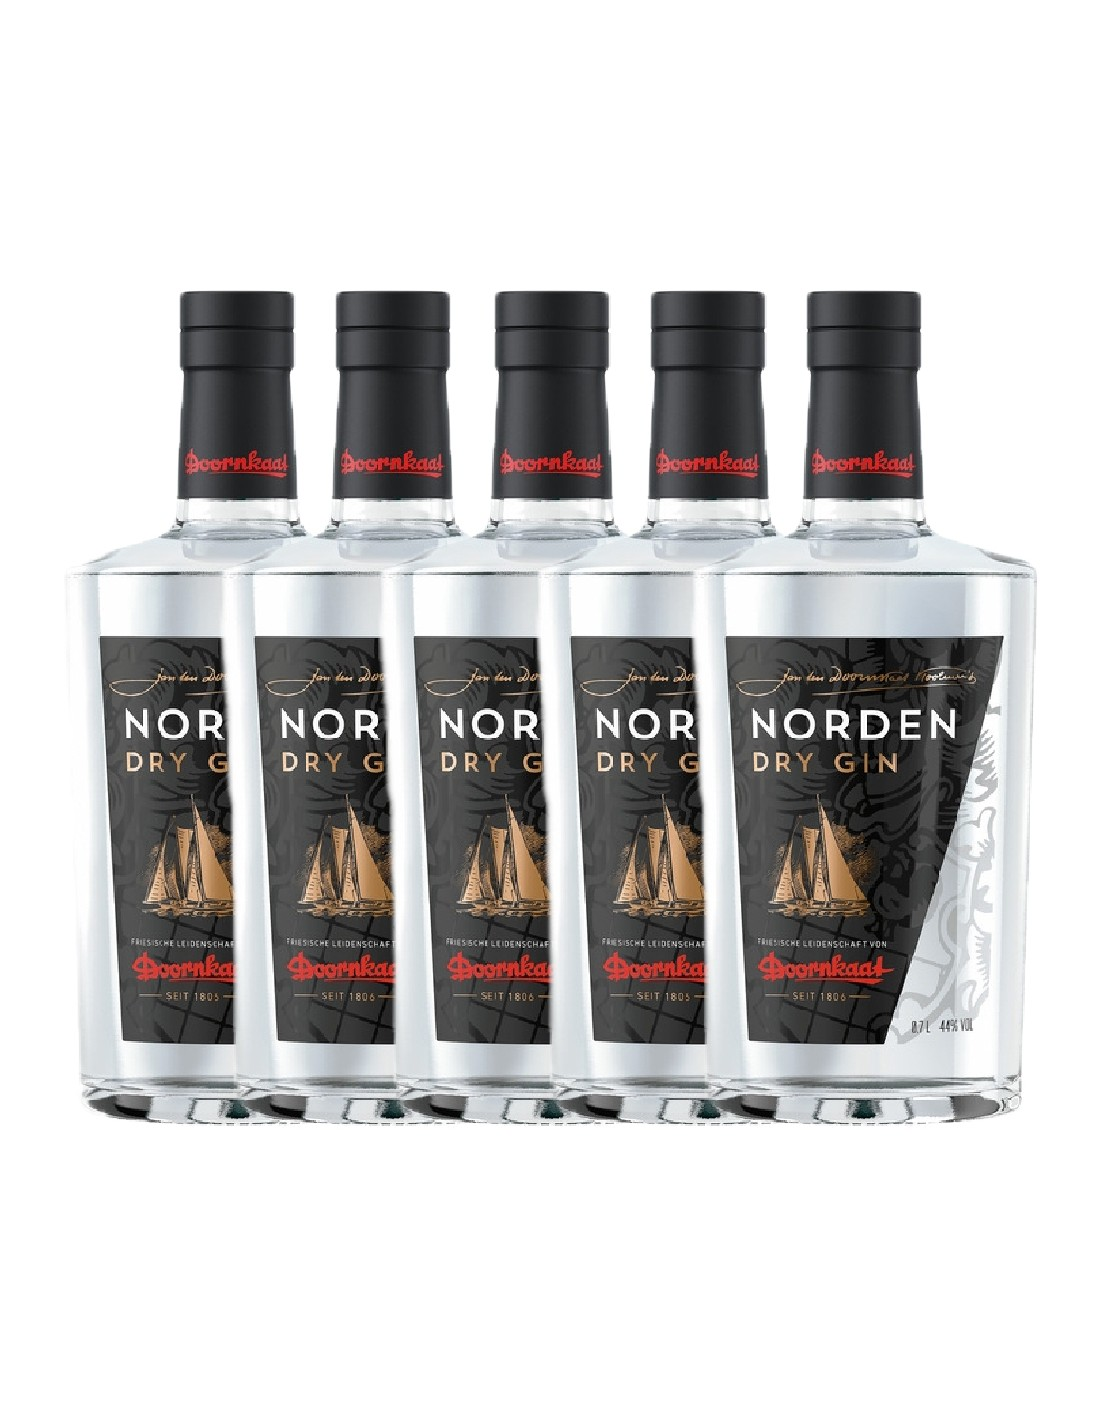 Pachet 5 sticle Gin Norden Dry By Doornkaat 44% alc., 0.7L, Germania